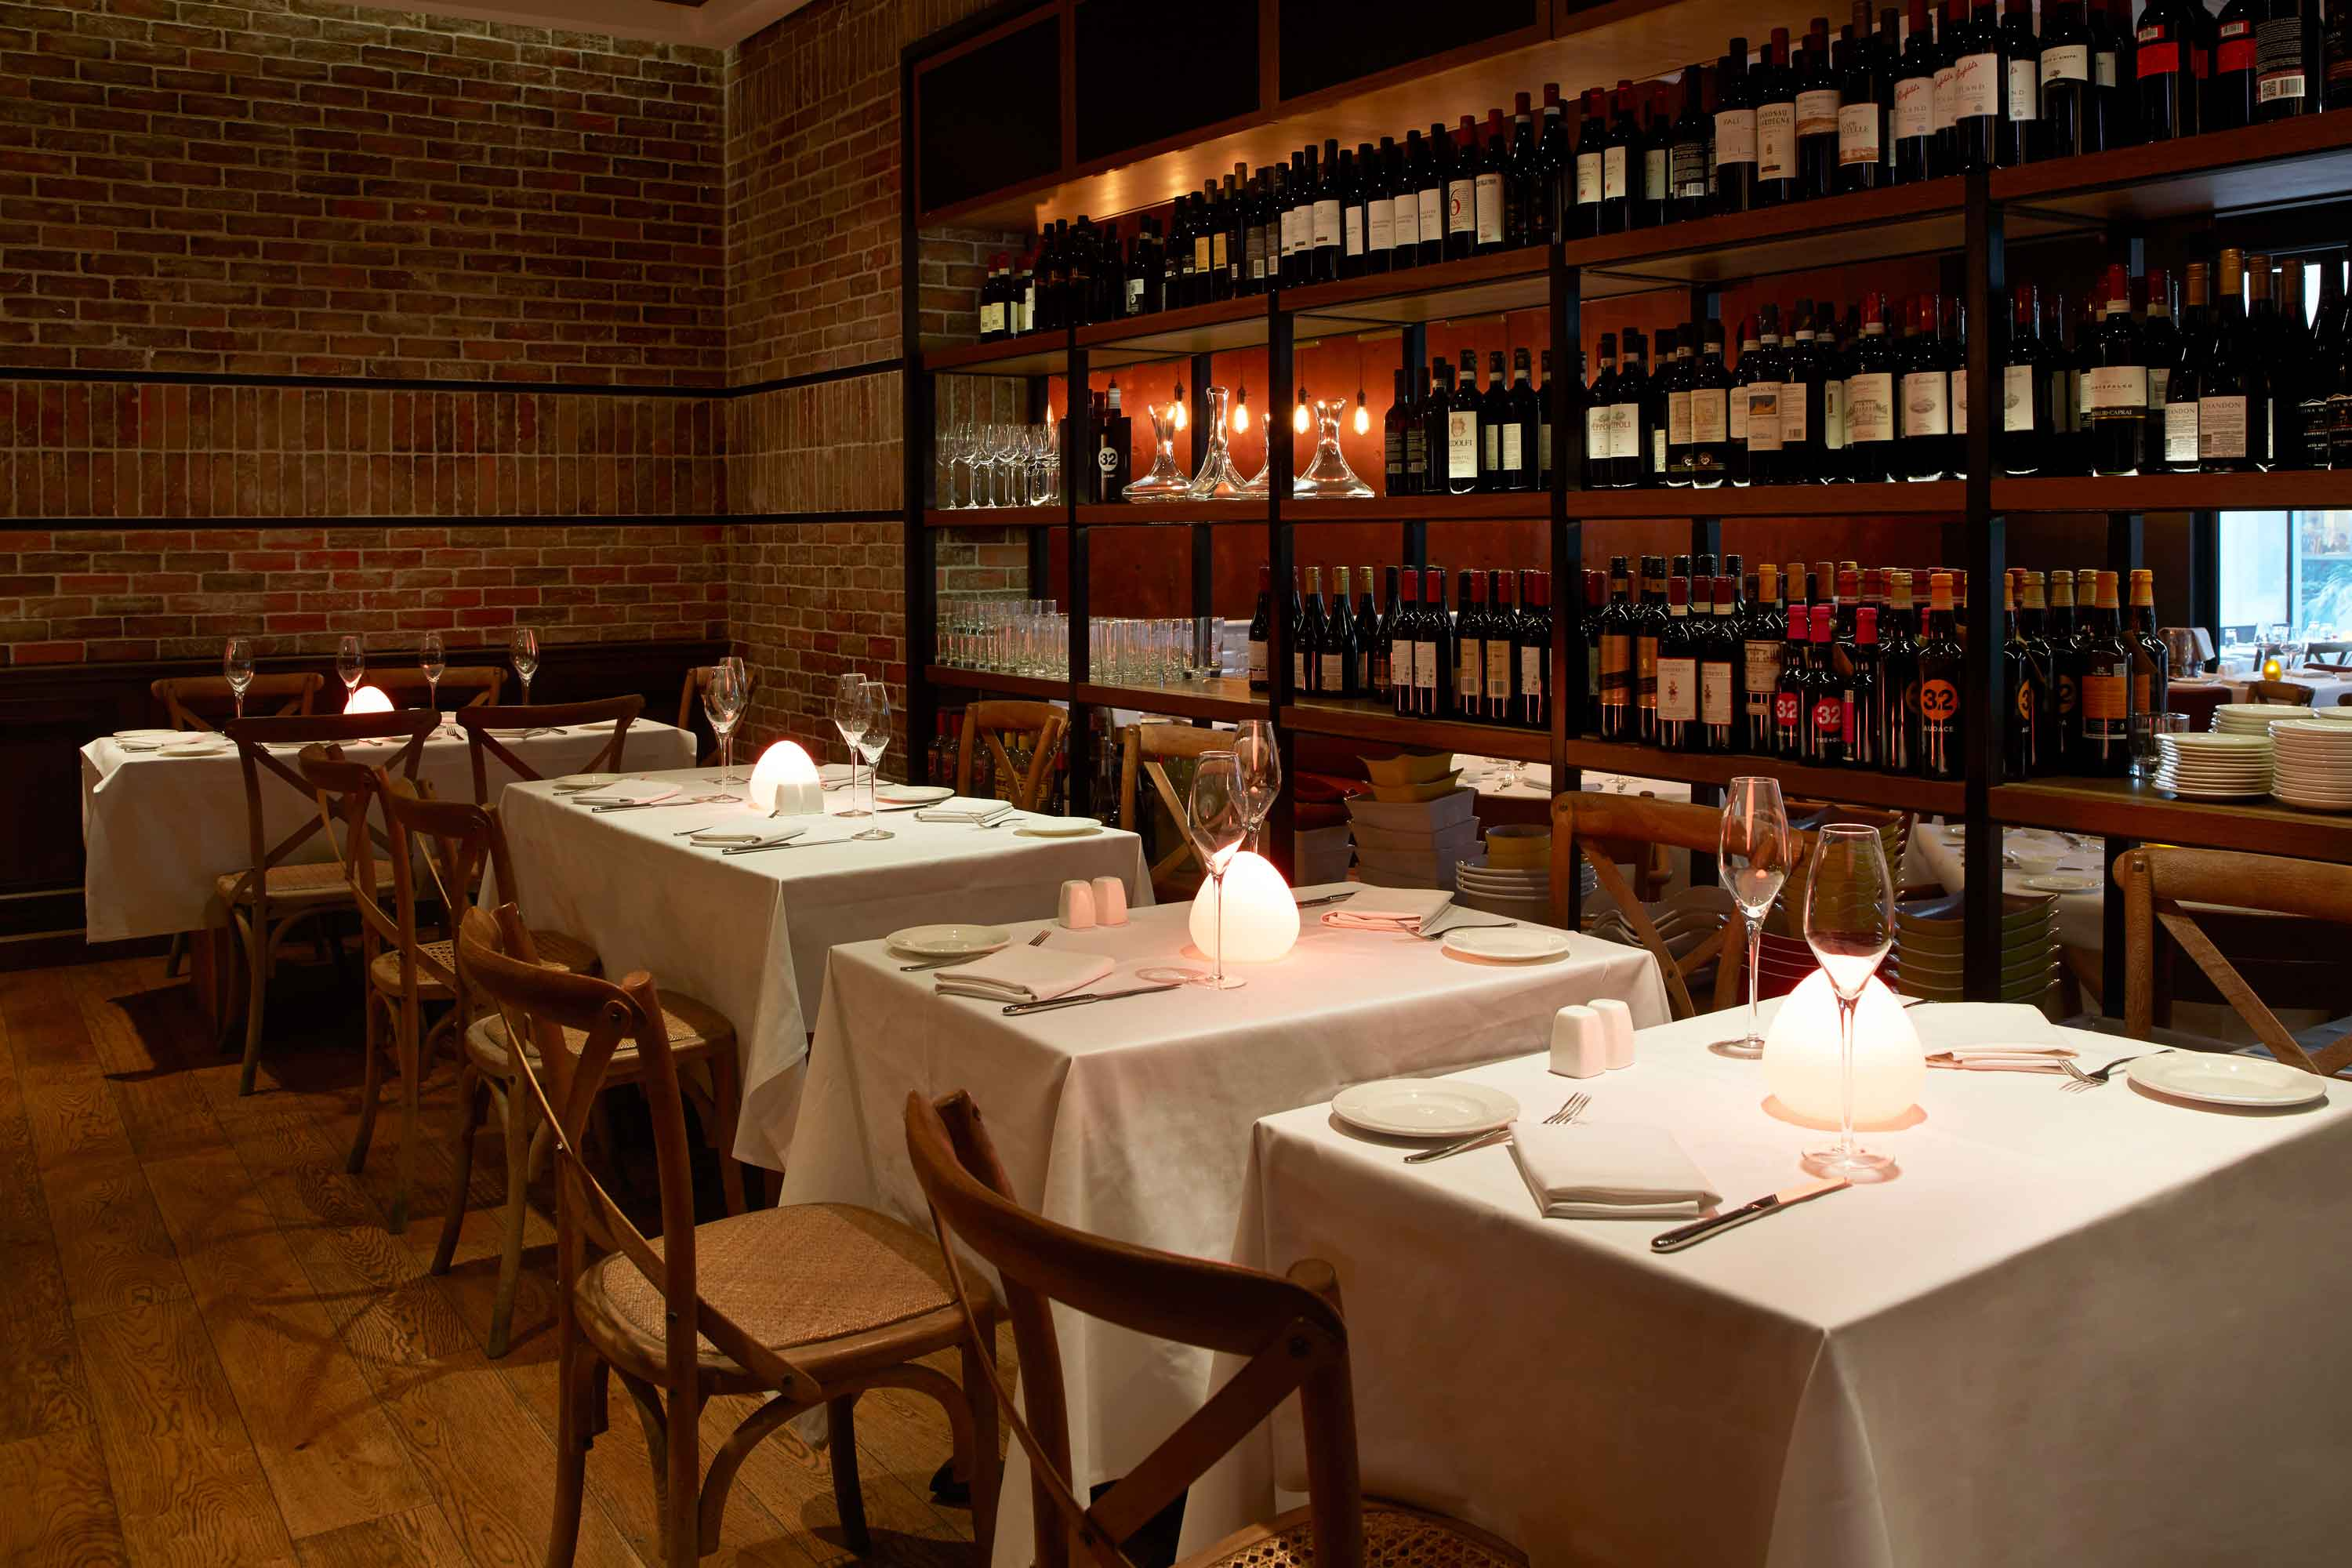 Our snug and comfy semi-private room is uniquely inviting and perfect place for hosting an intimate gathering up to 30 people